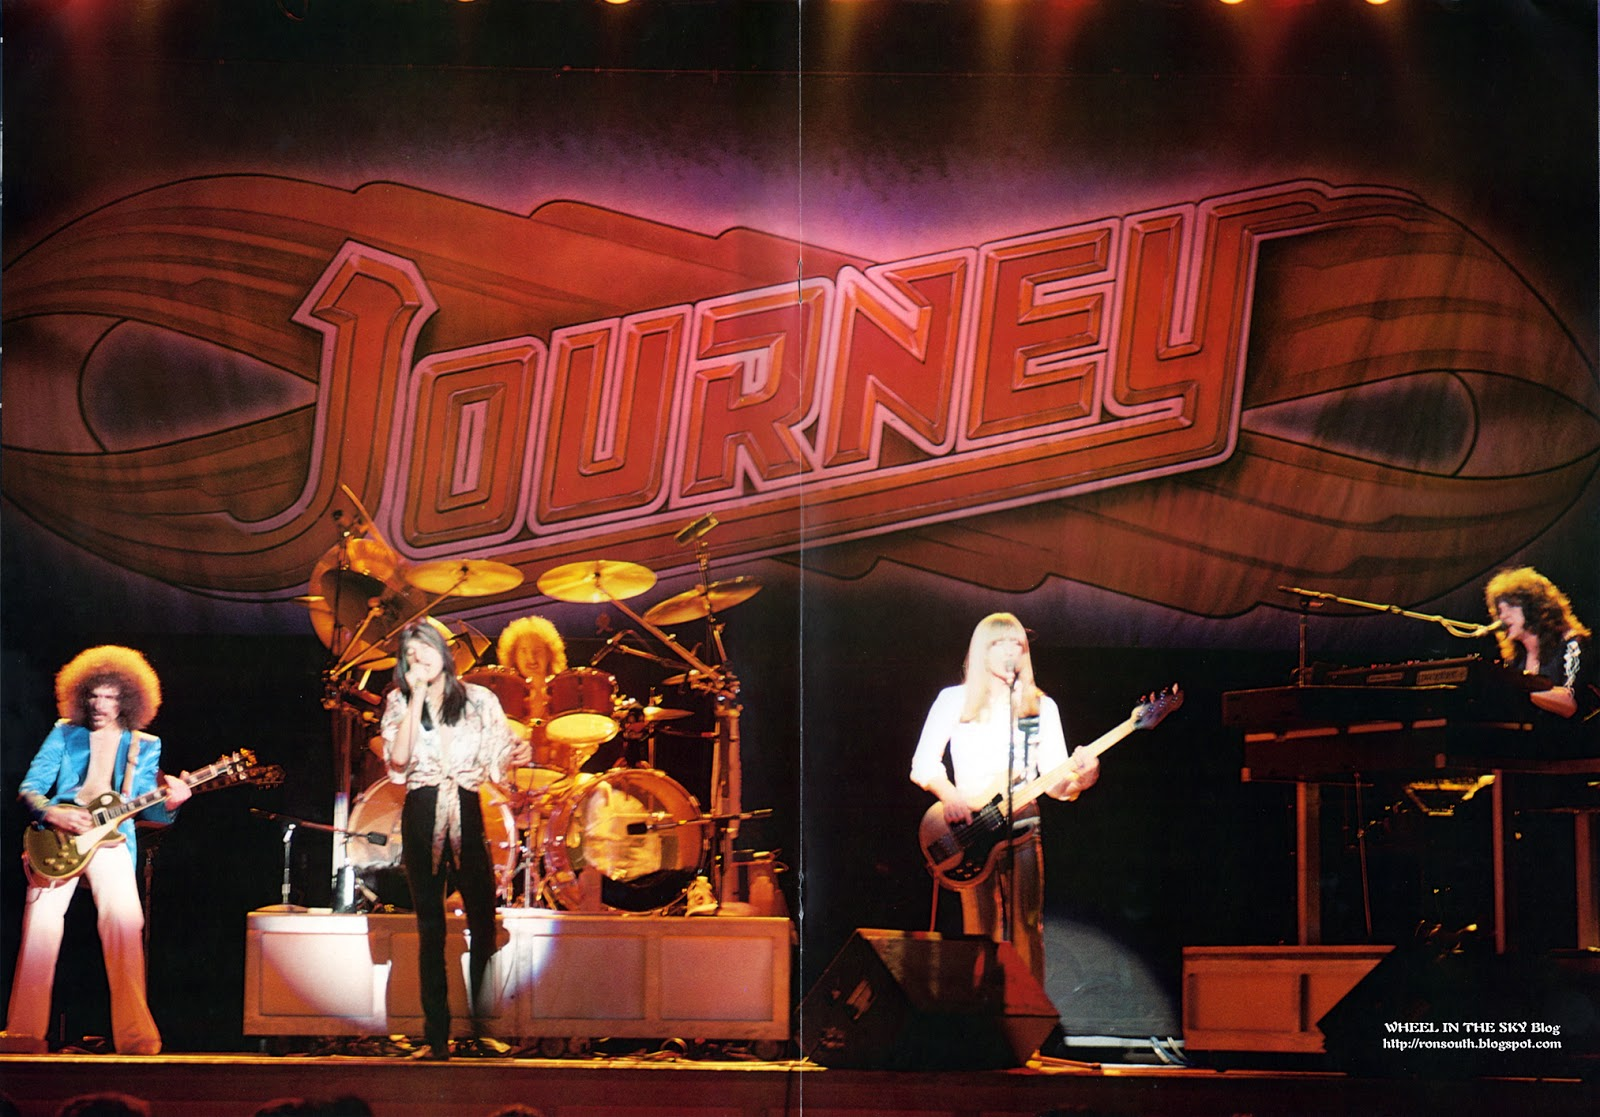 wheel in the sky journey tour book 1979 centerfold poster. Black Bedroom Furniture Sets. Home Design Ideas